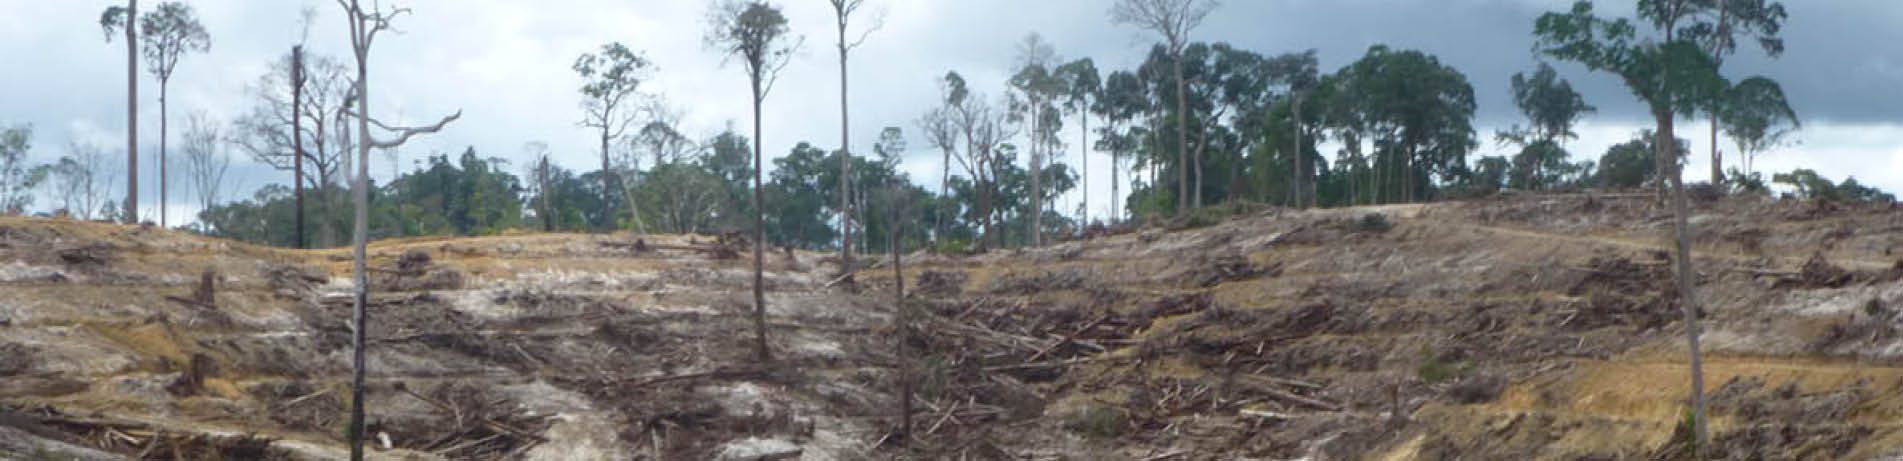 Deforested hillside in Indonesia